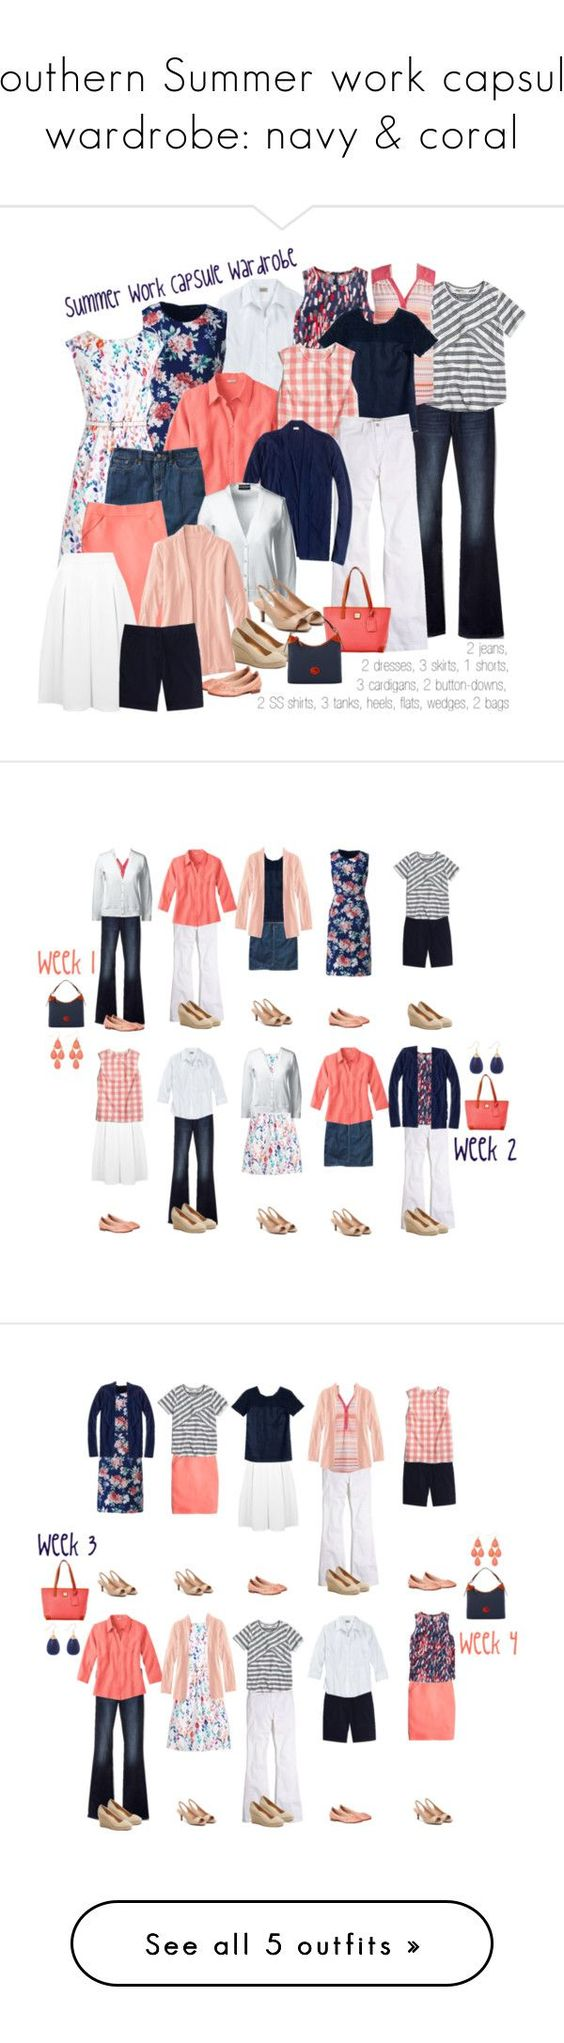 Southern Summer work capsule wardrobe: navy & coral on Polyvore featuring Lands' End, Gap, Boden, J.Crew, Madewell, Miss Selfridge, Dooney & Bourke and plus size clothing